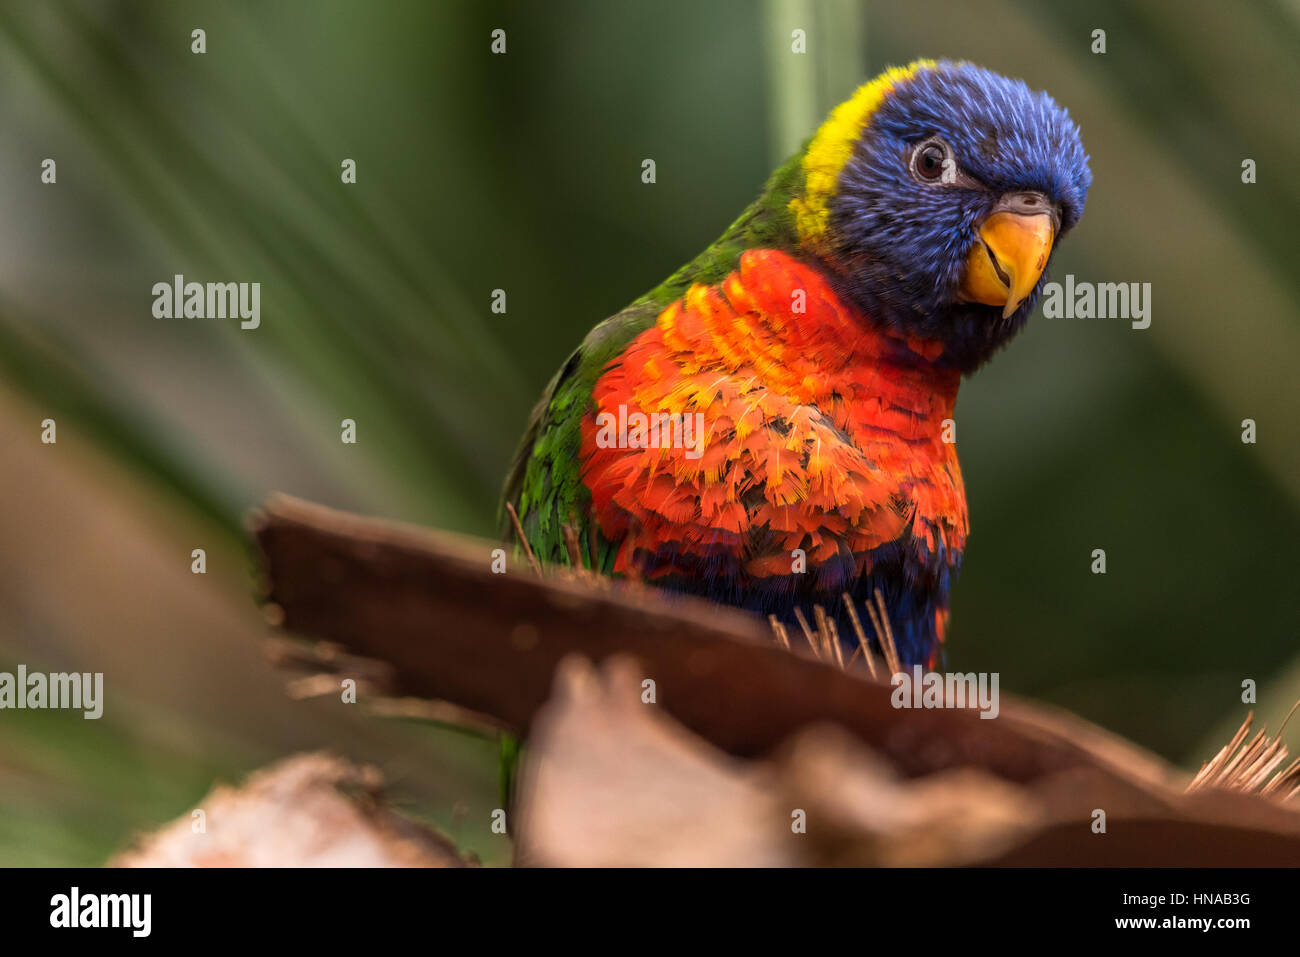 The Rainbow lori (Trichoglossus moluccanus) a species of parrot living in Australia. The bird is a medium-sized - Stock Image